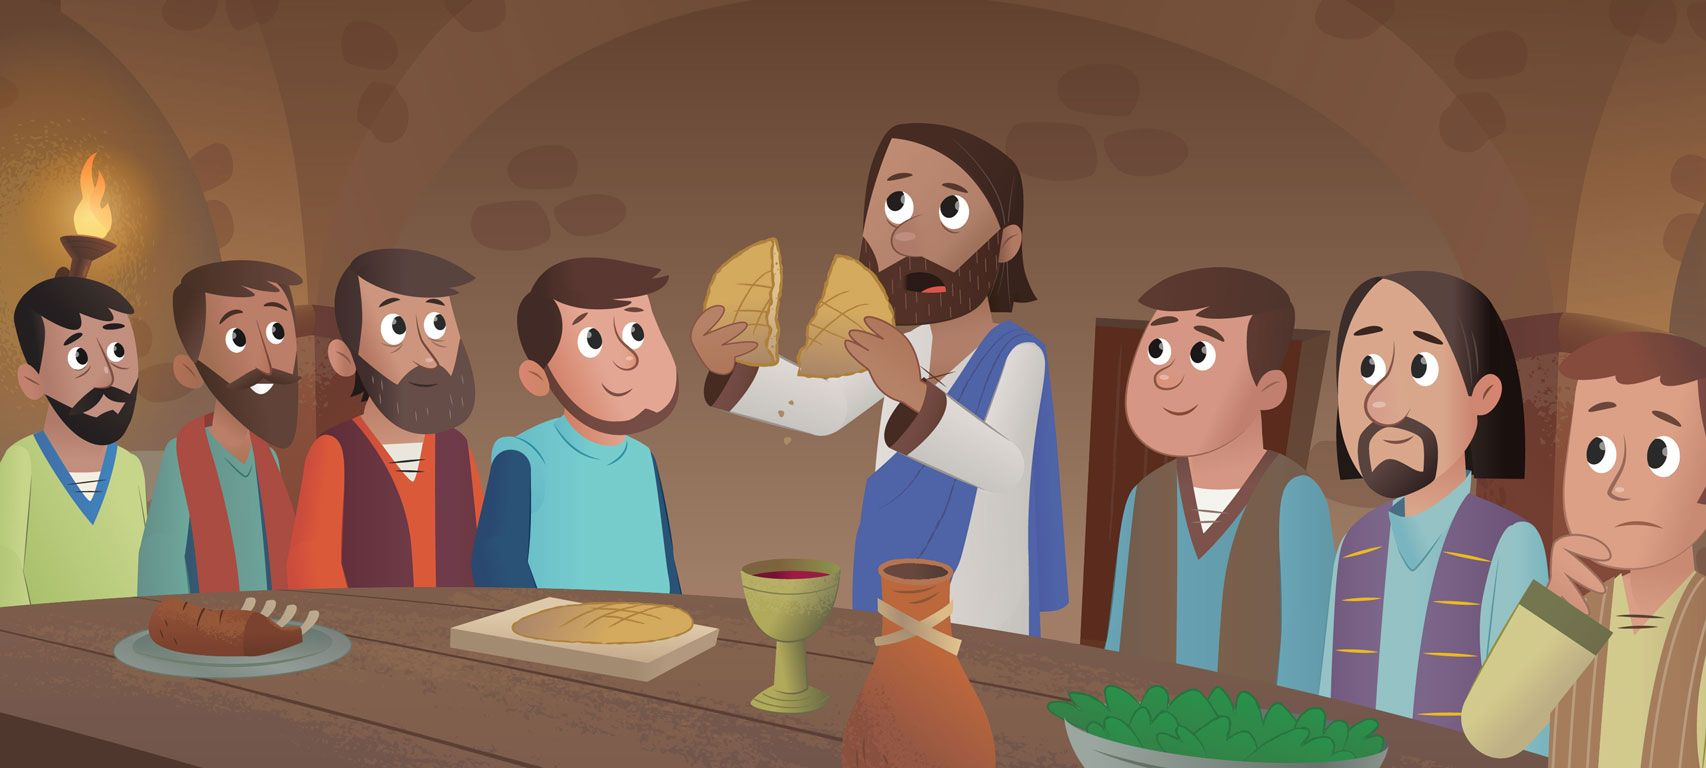 in new bible app for kids story u201ca goodbye meal u201d jesus shares